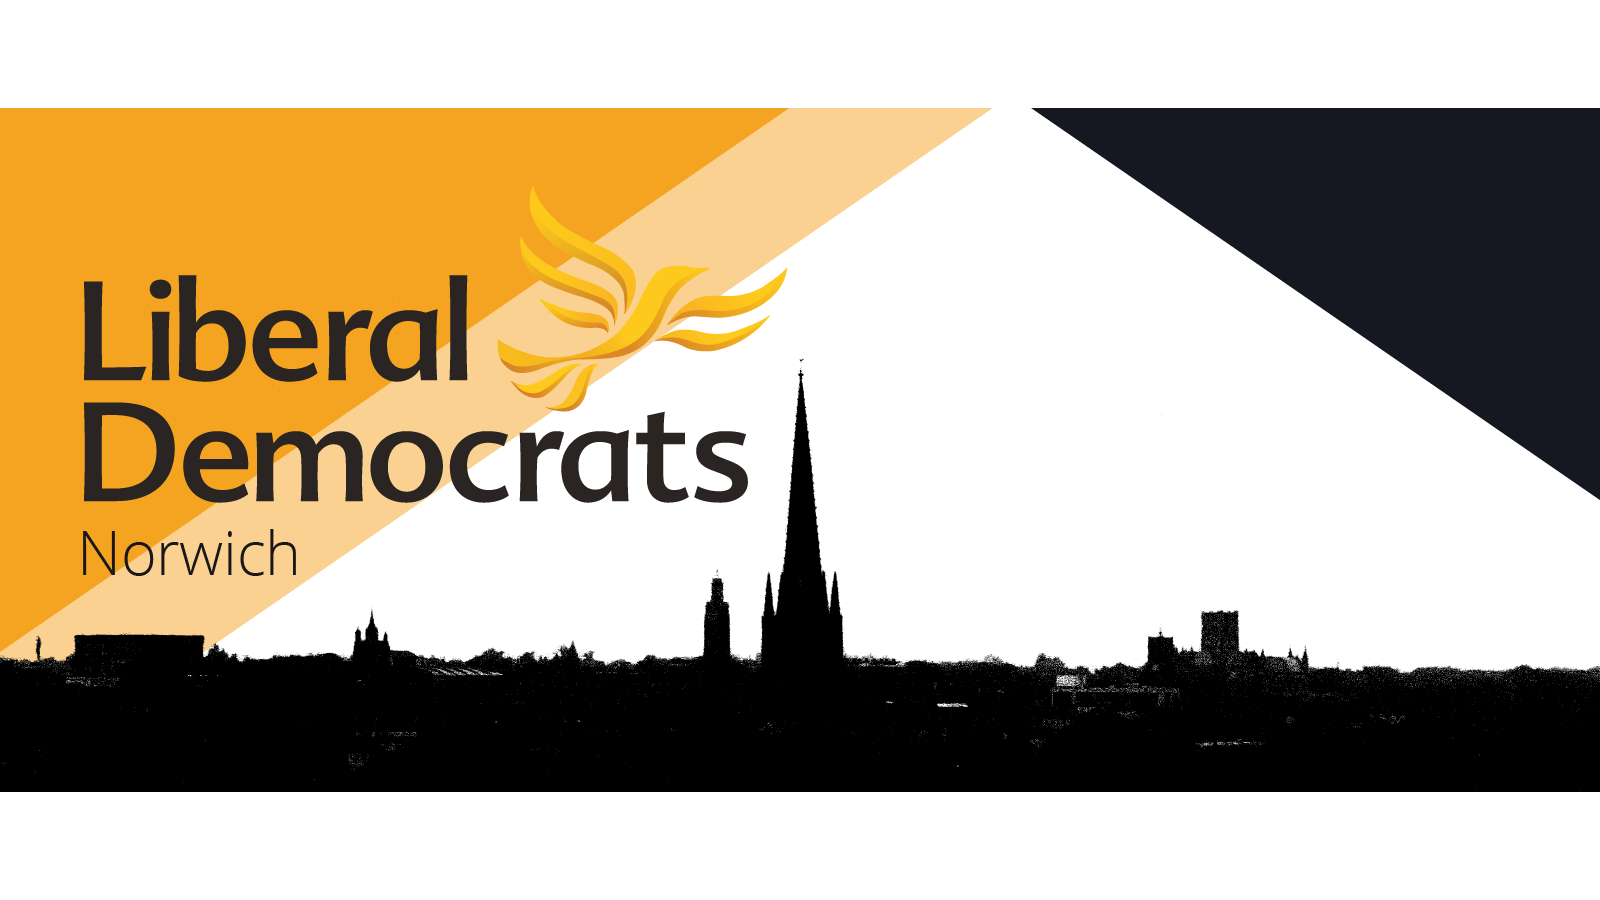 Norwich Lib Dems website banner